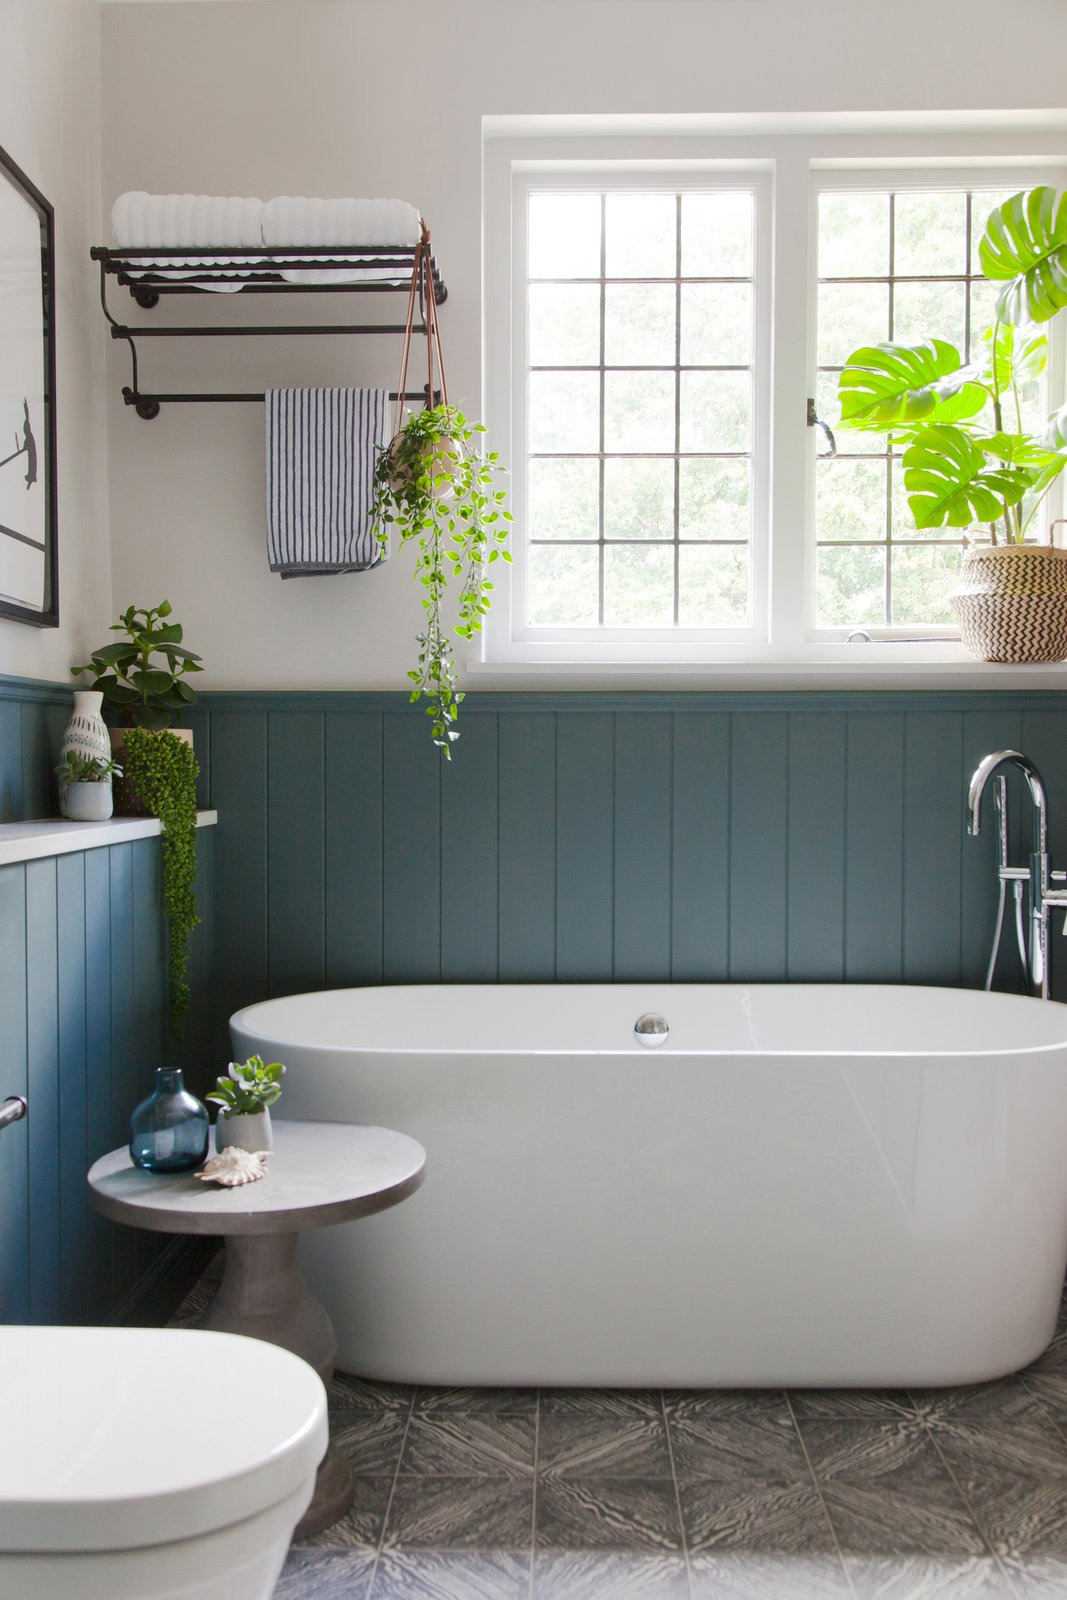 Bath Room and Freestanding Tub  The bespoke, encaustic tiles continue in the bathroom.    Photo 16 of 16 in An English Arts and Crafts Home Becomes Delightfully Modernized